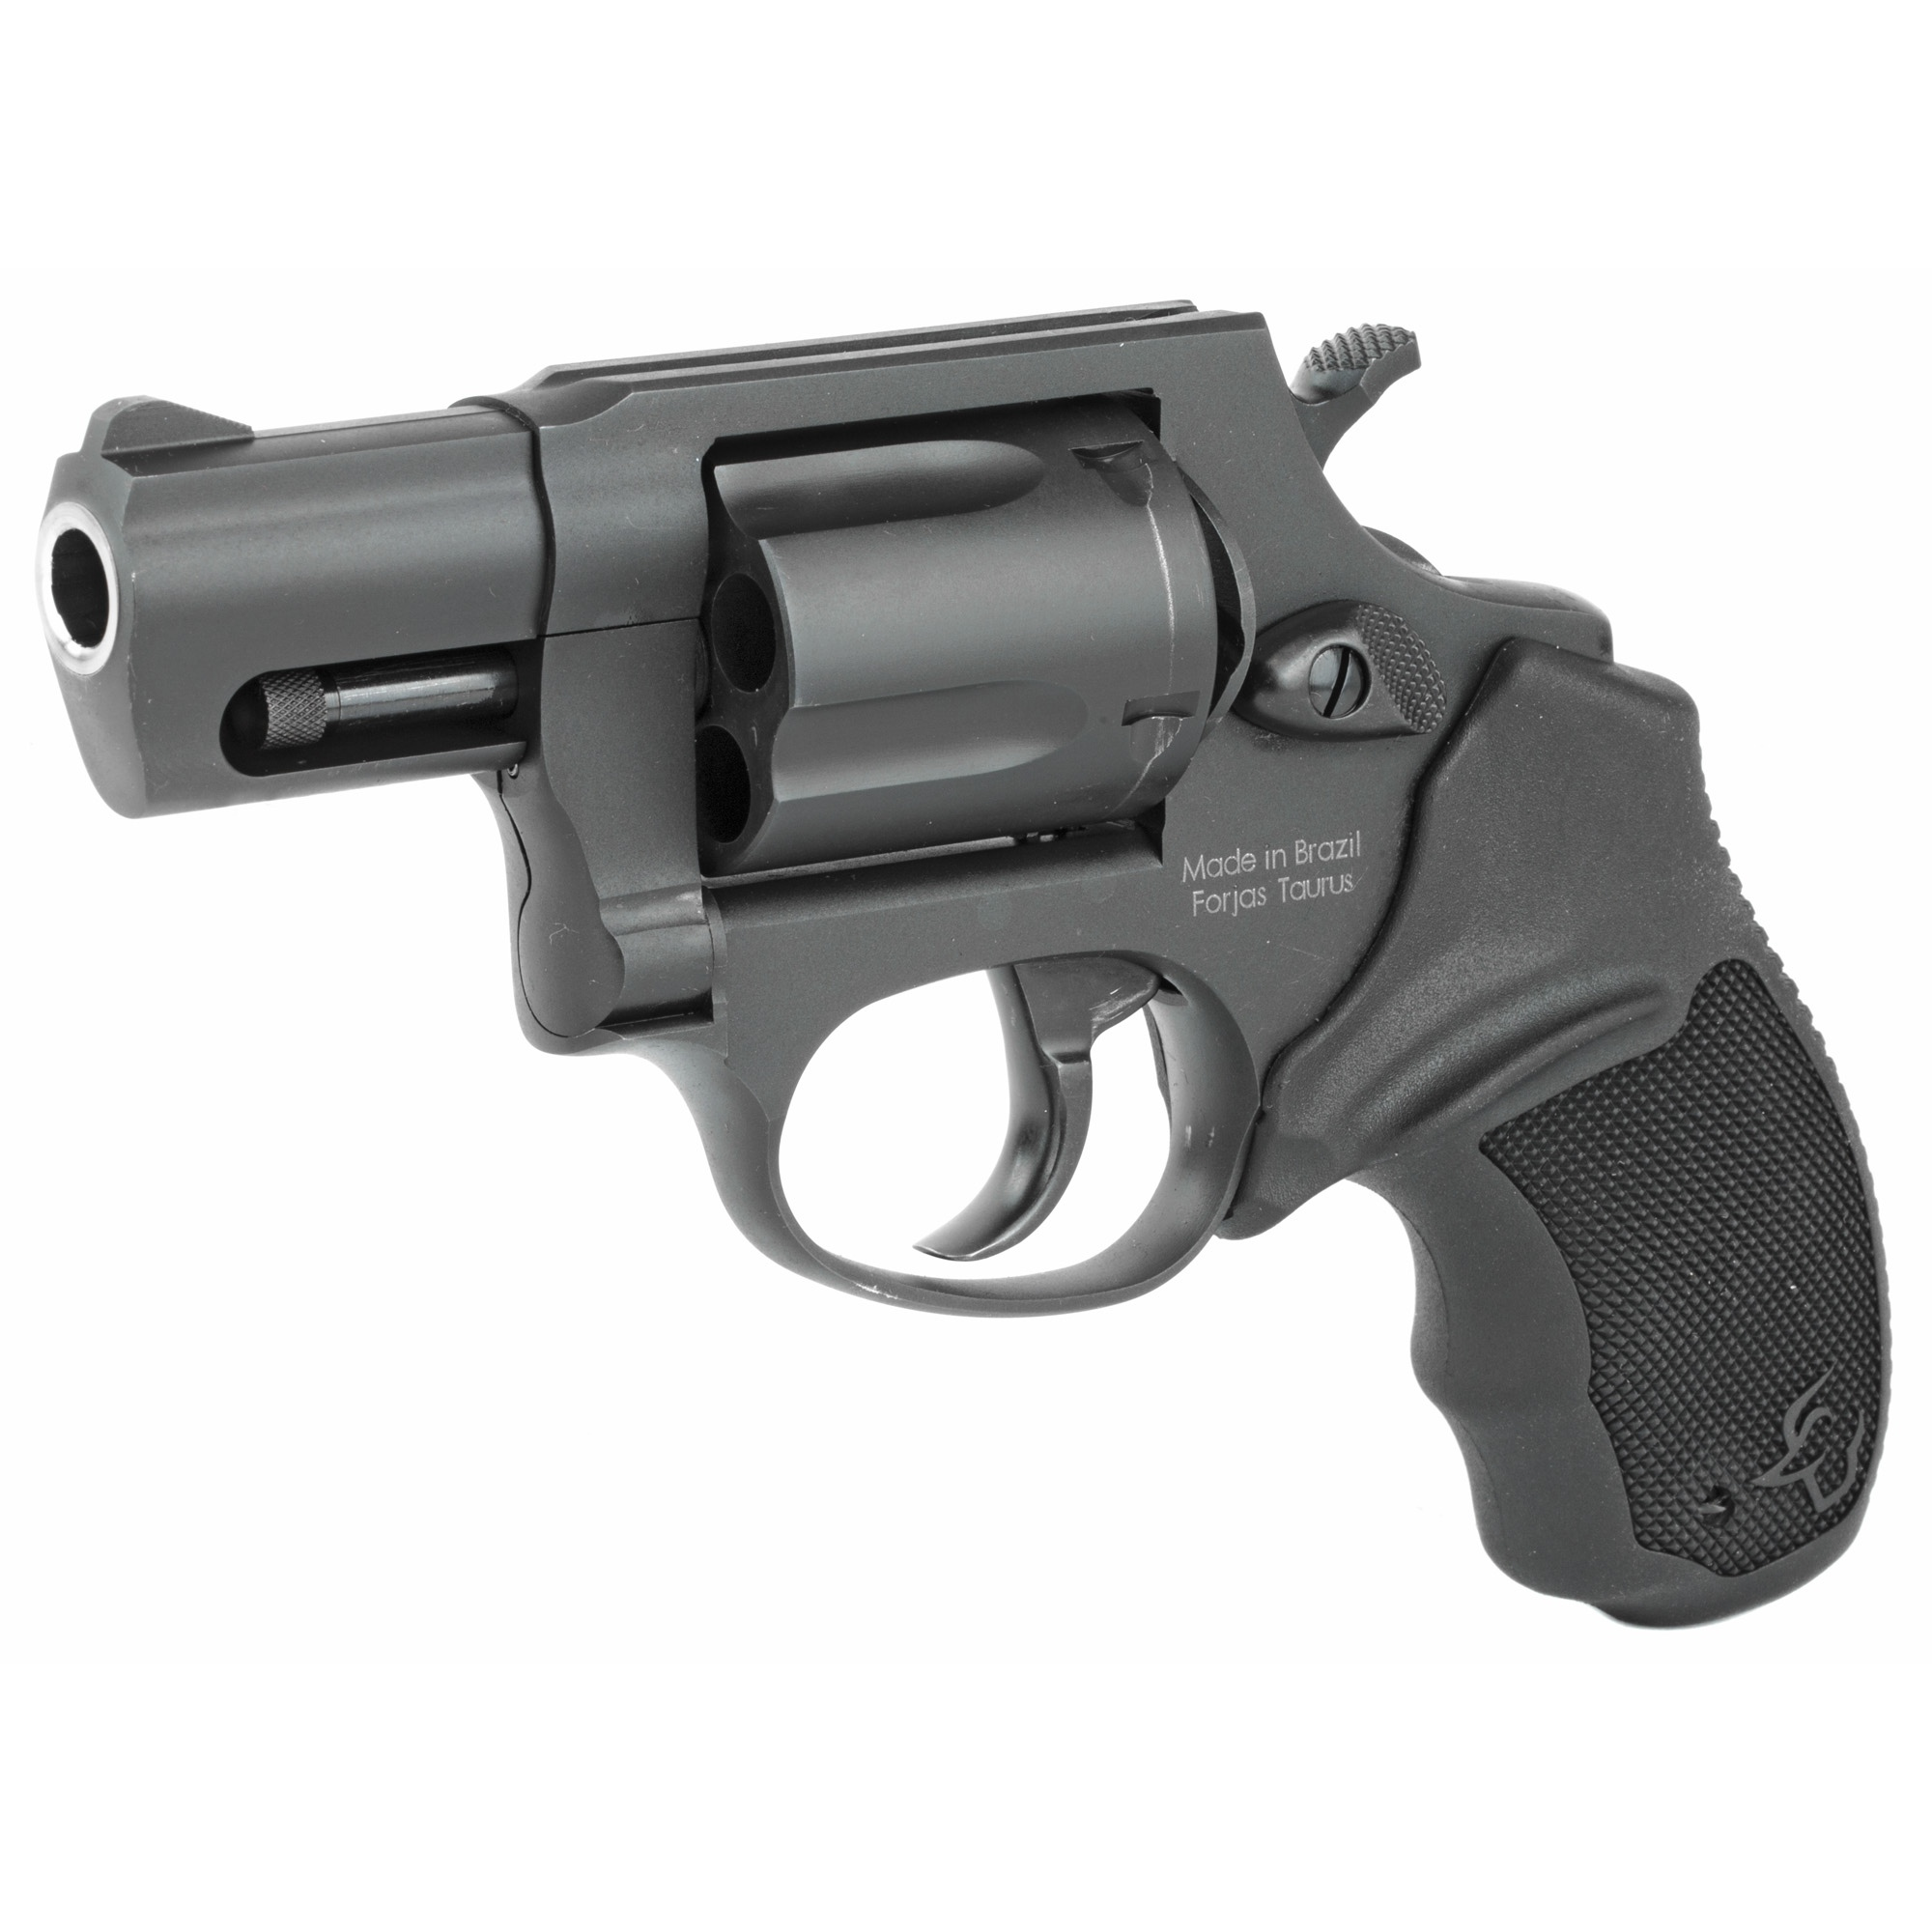 Taurus 605  357 Magnum Revolver · Fast & Free Shipping · DK Firearms